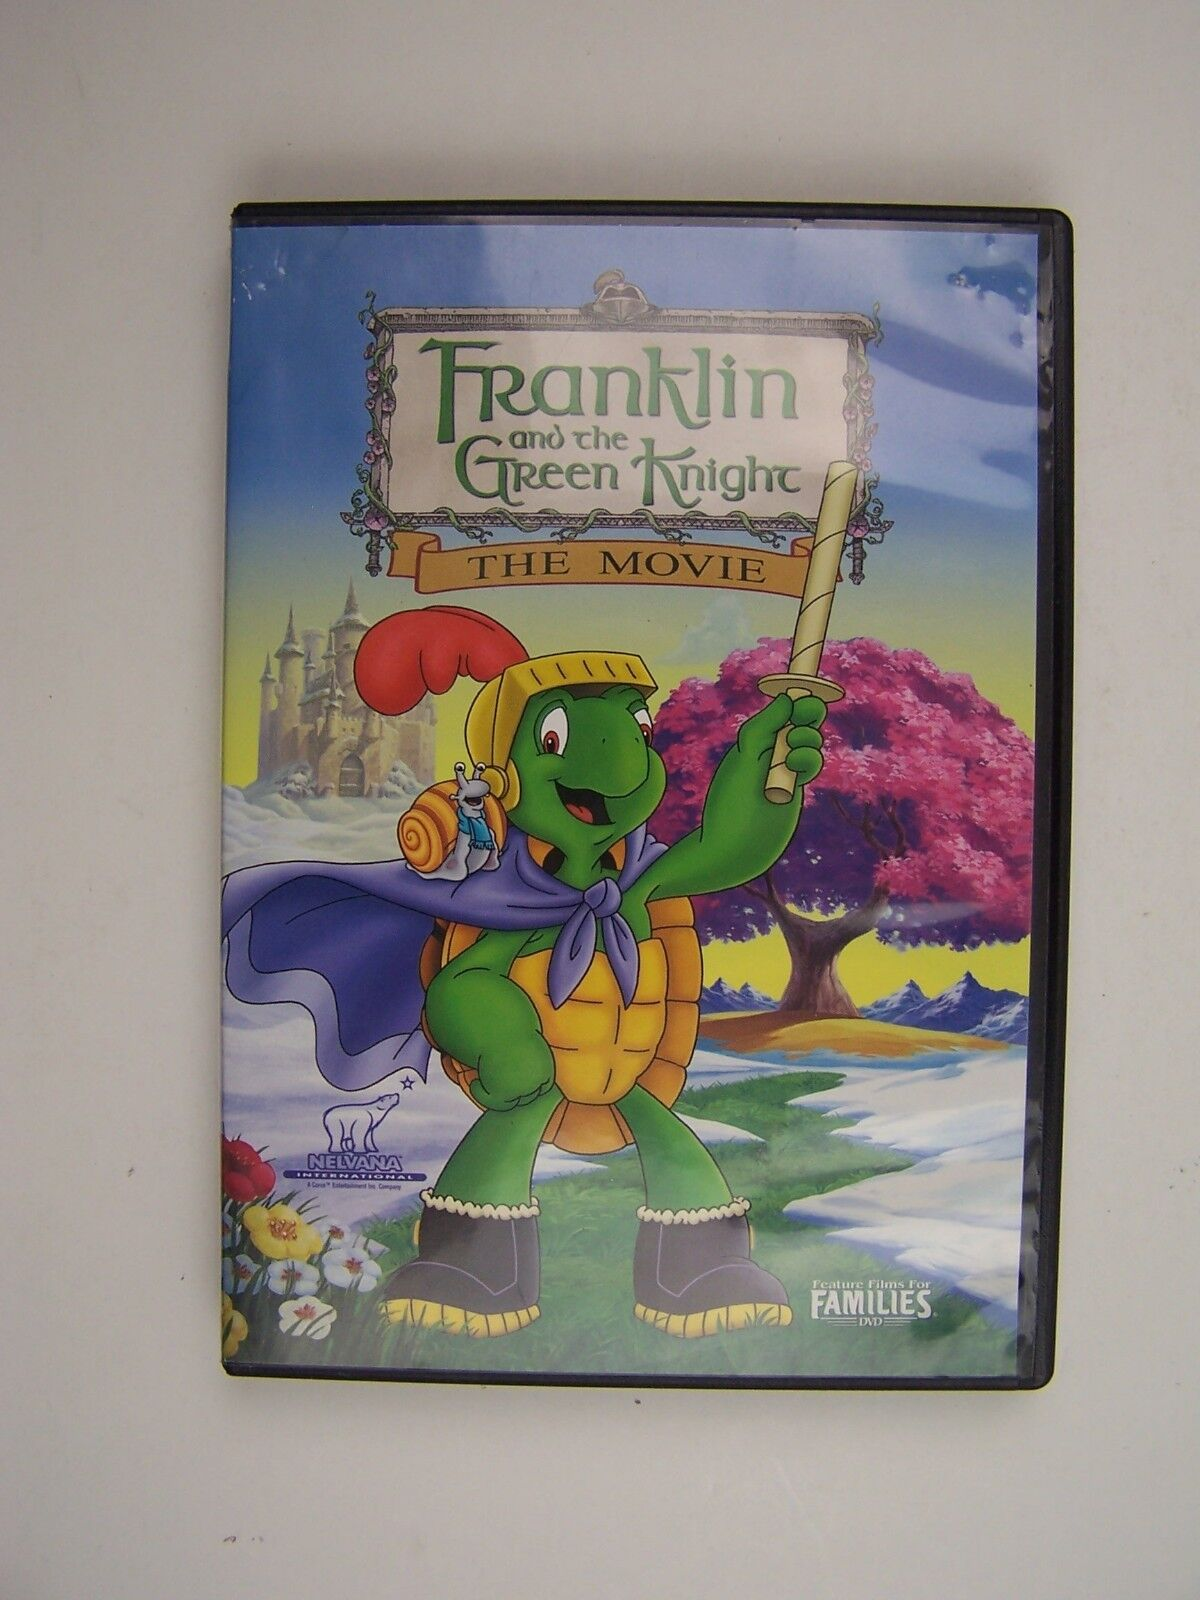 Franklin - Franklin and the Green Knight The Movie DVD